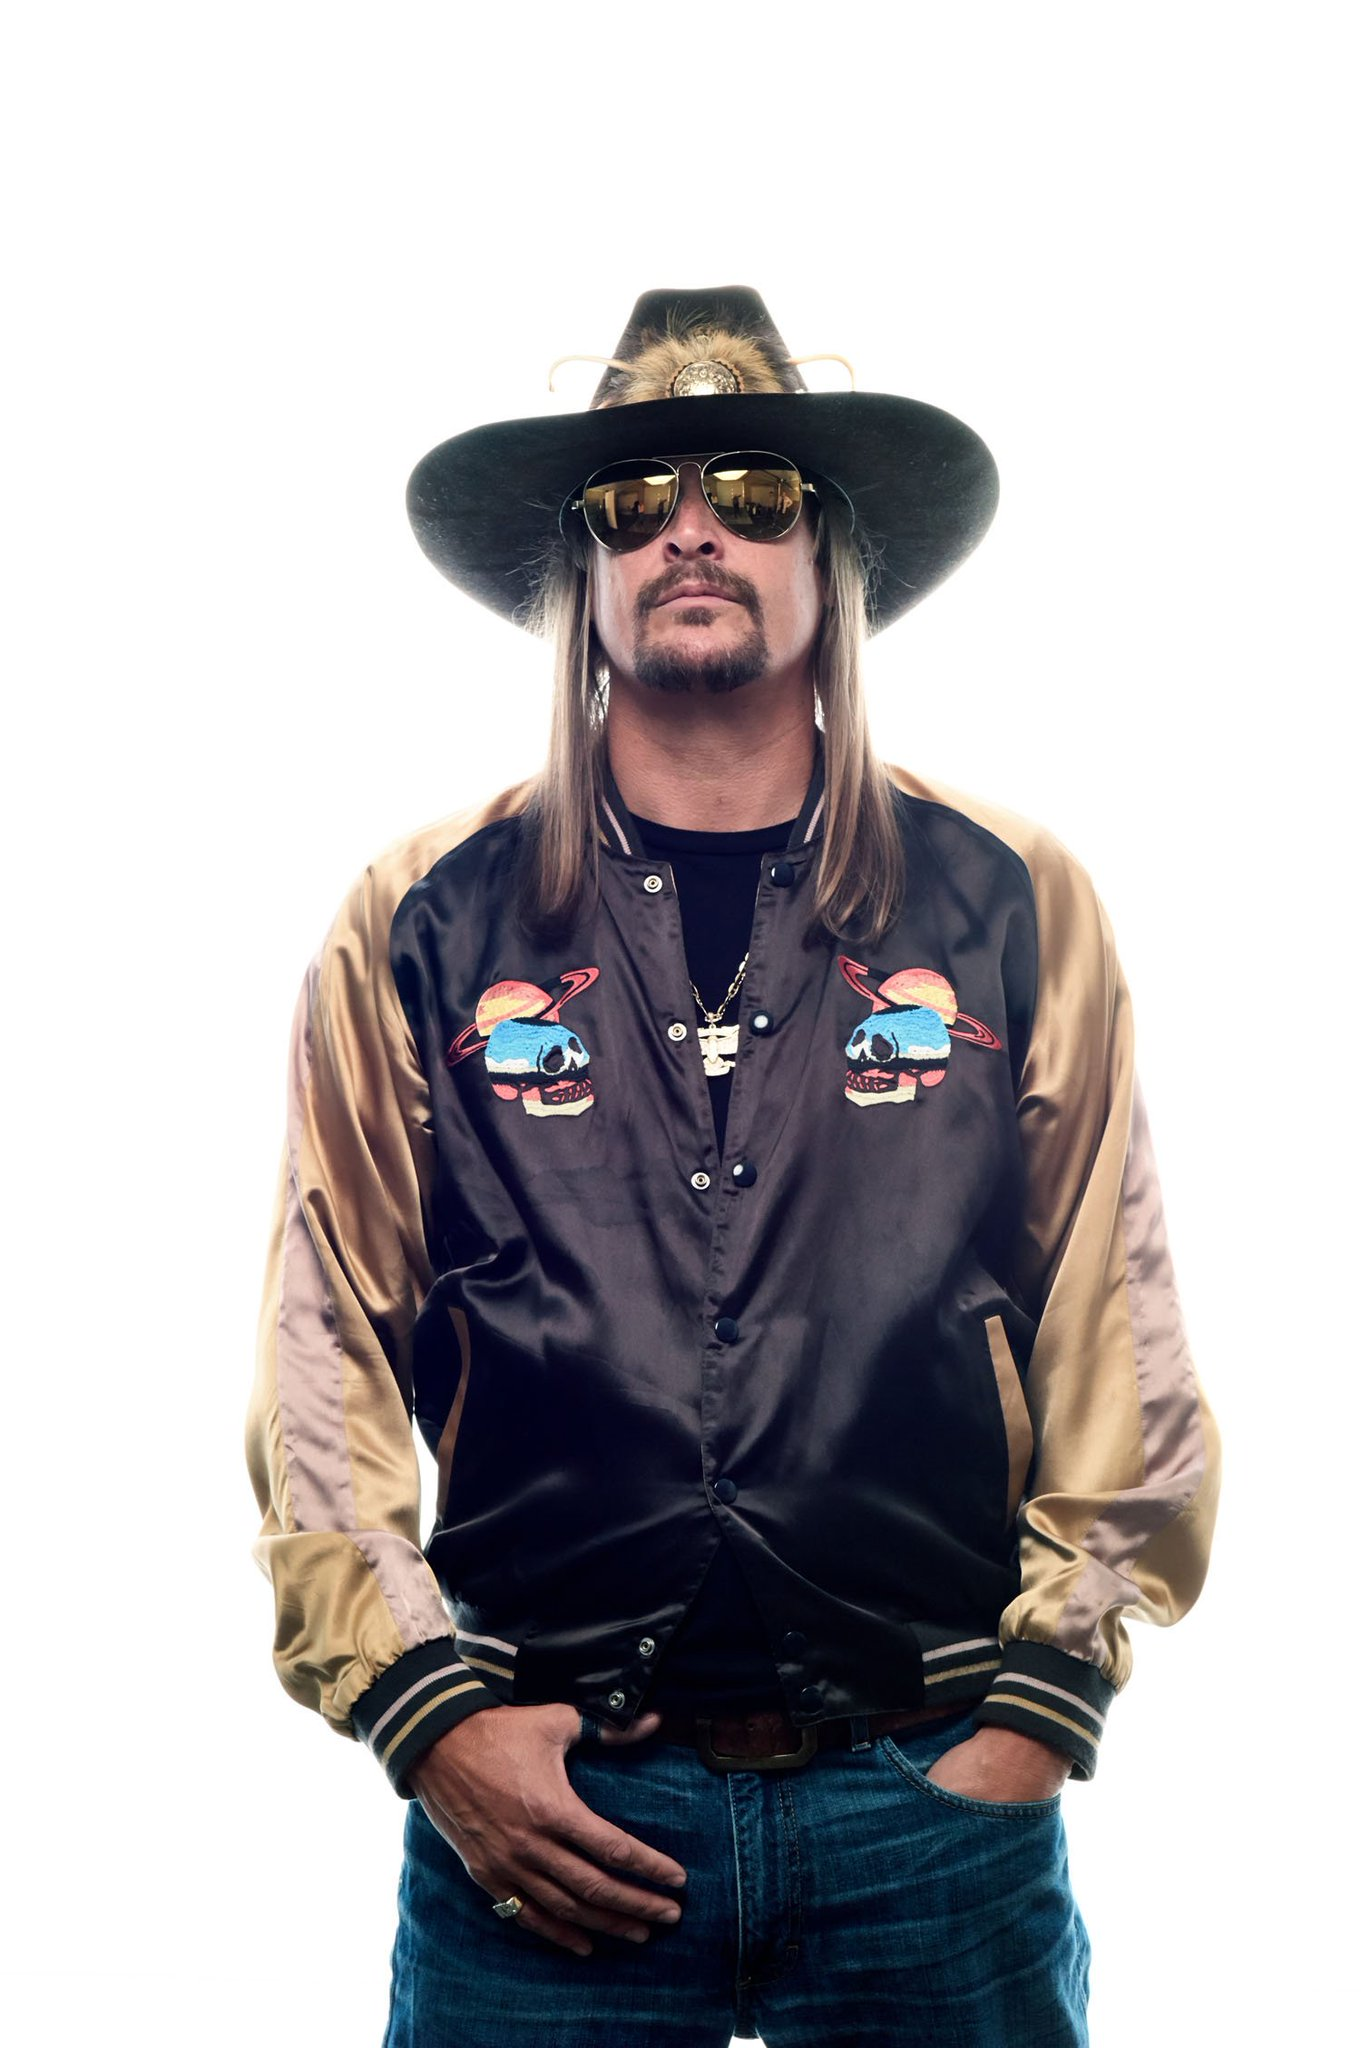 Kid Rock on Twitter